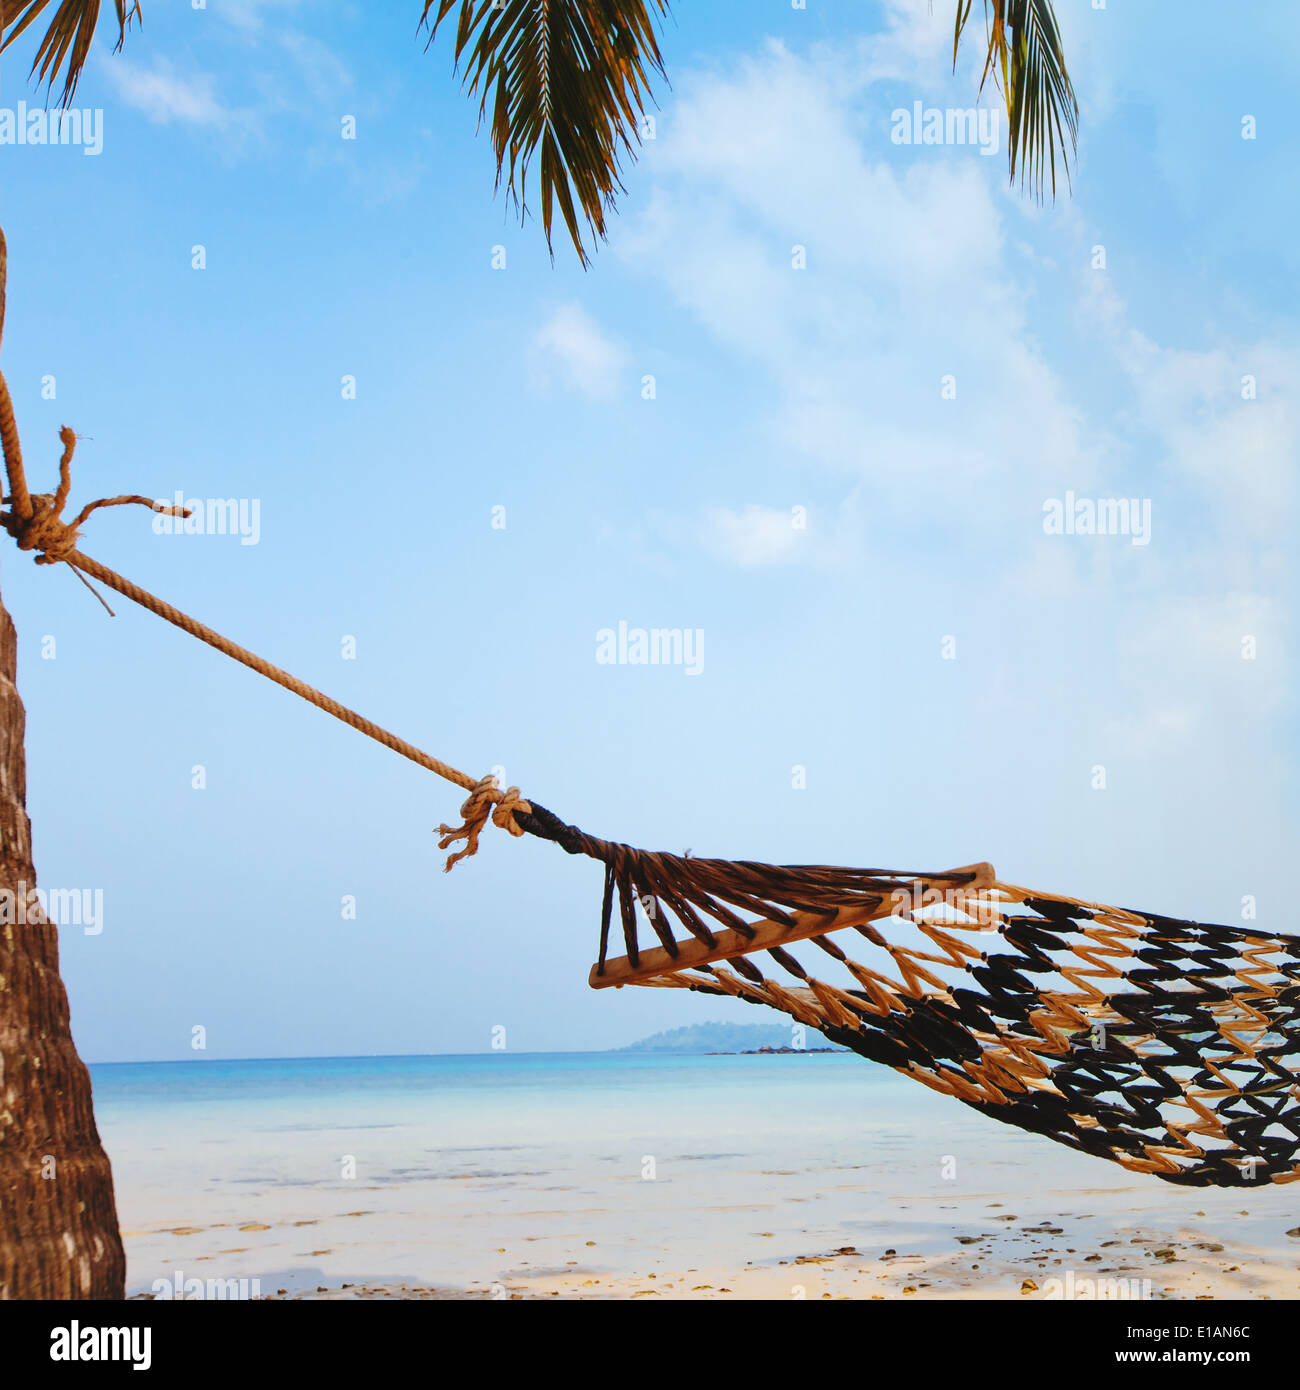 relaxation on beautiful tropical beach, vacations - Stock Image